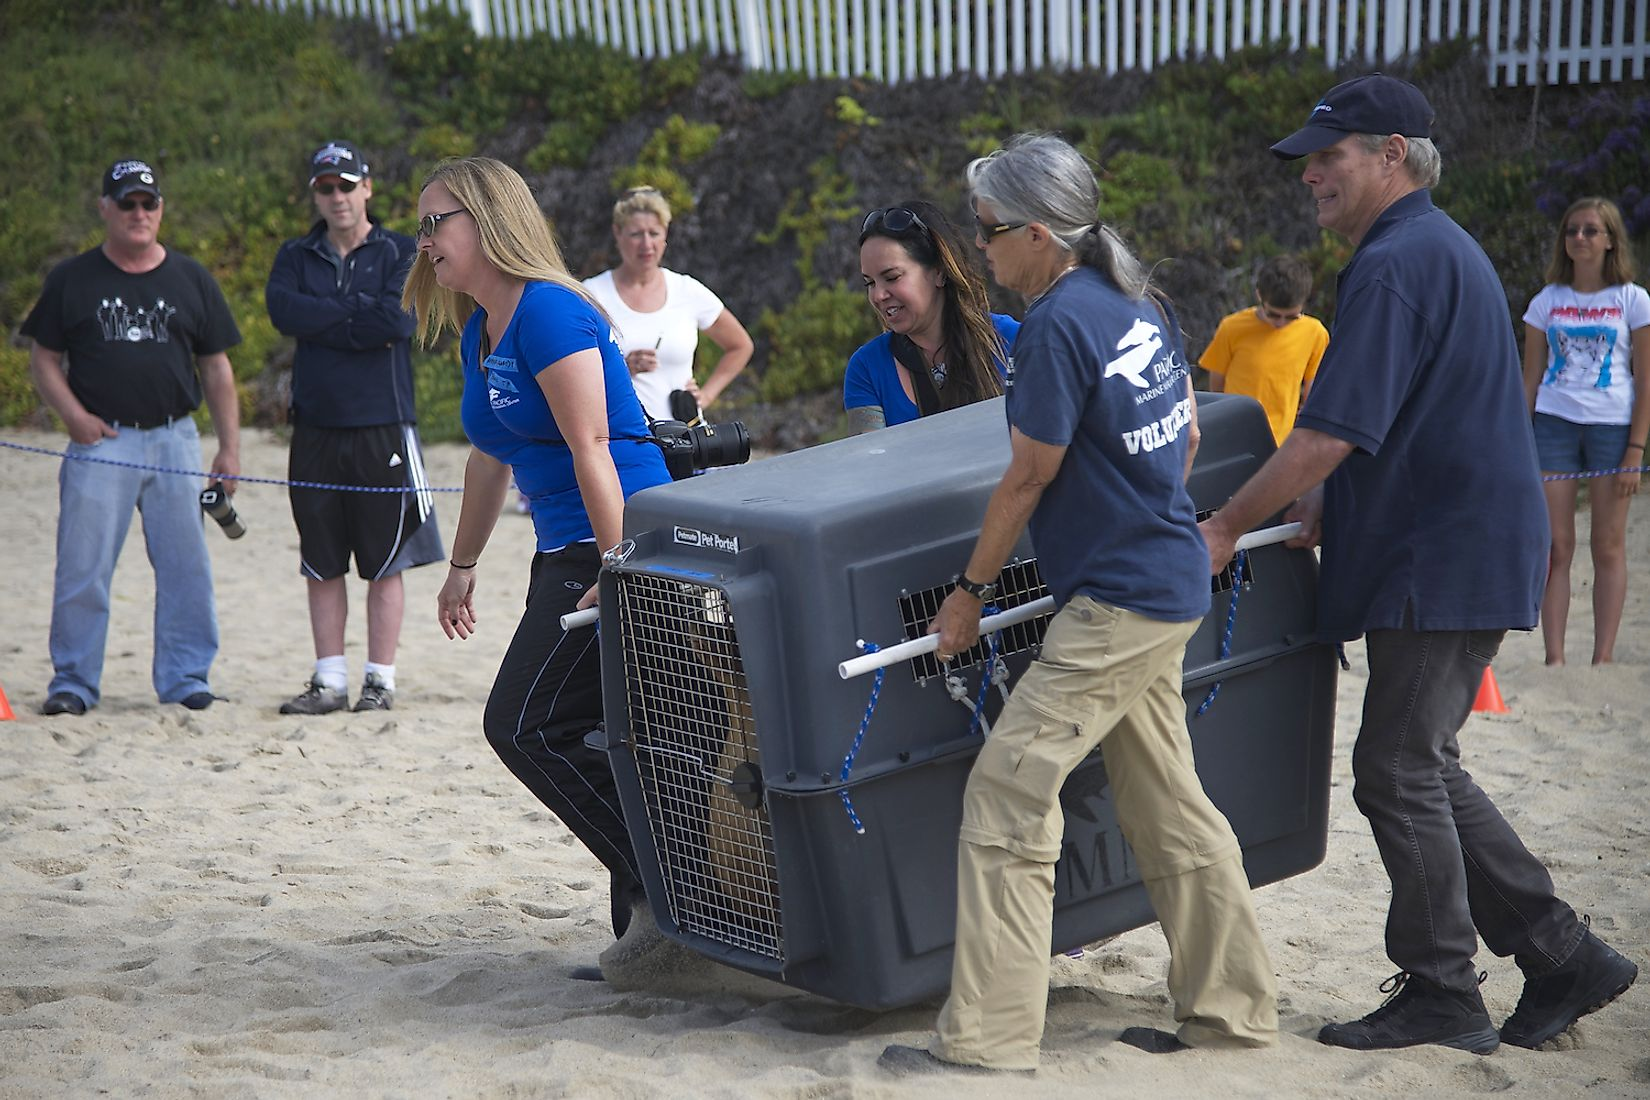 Volunteers from the Pacific Marine Mammal Rescue Center in Laguna Beach assisted with the release of four Sea Lions rehabilitated at the center. Image credit: Sheila Fitzgerald/Shutterstock.com